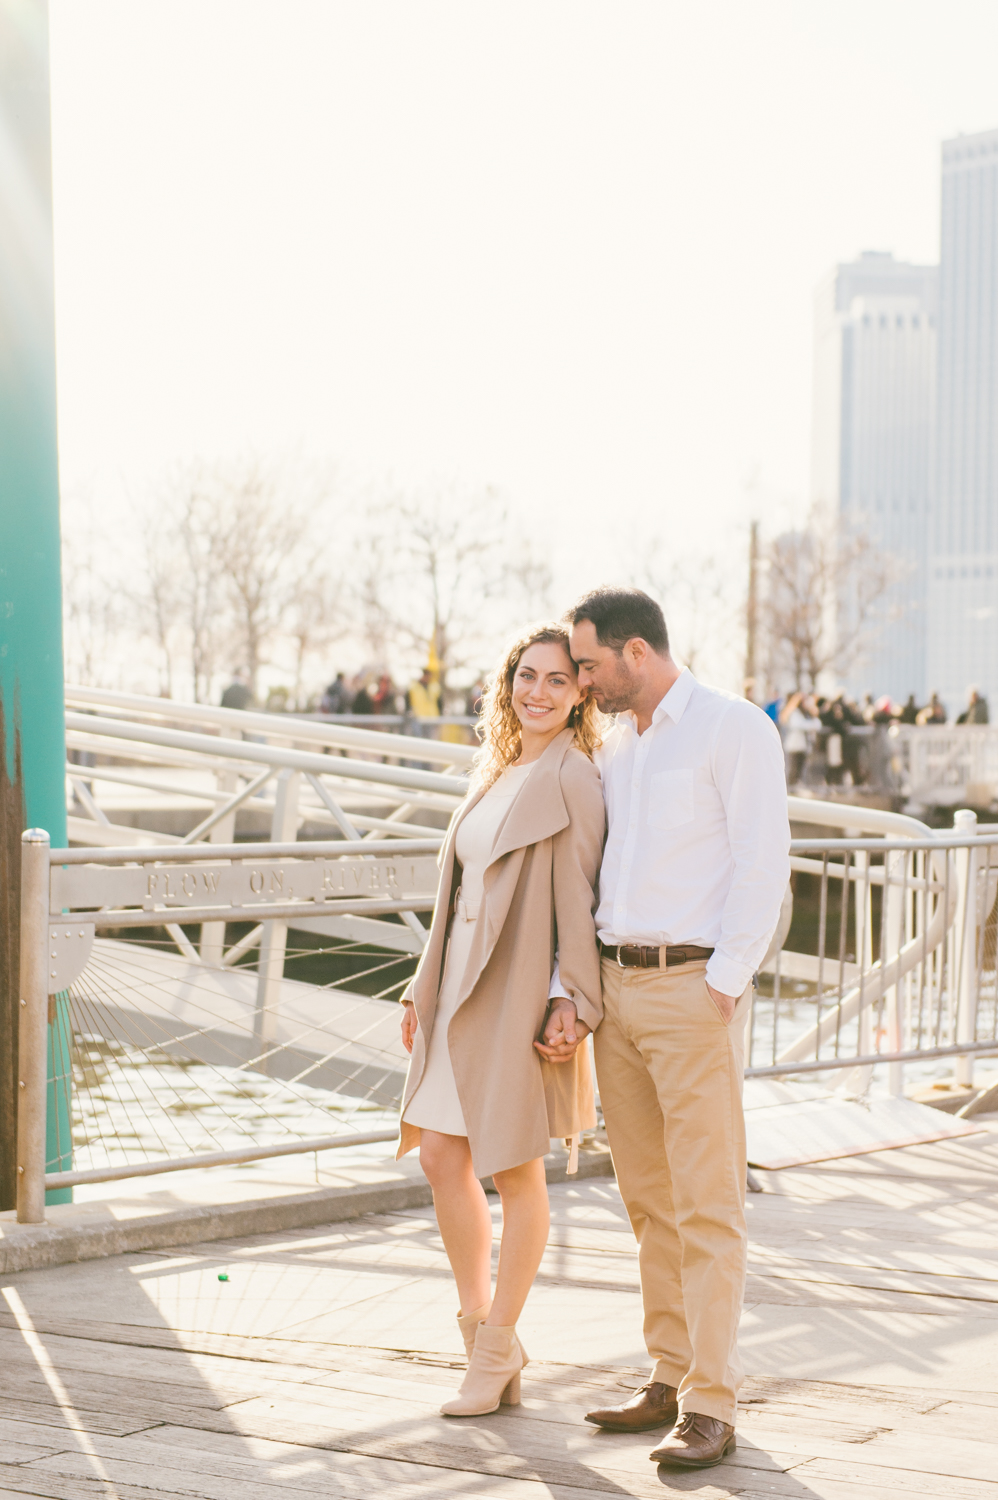 DUMBO.BrooklynBridge.Engagements.MK4.jpg